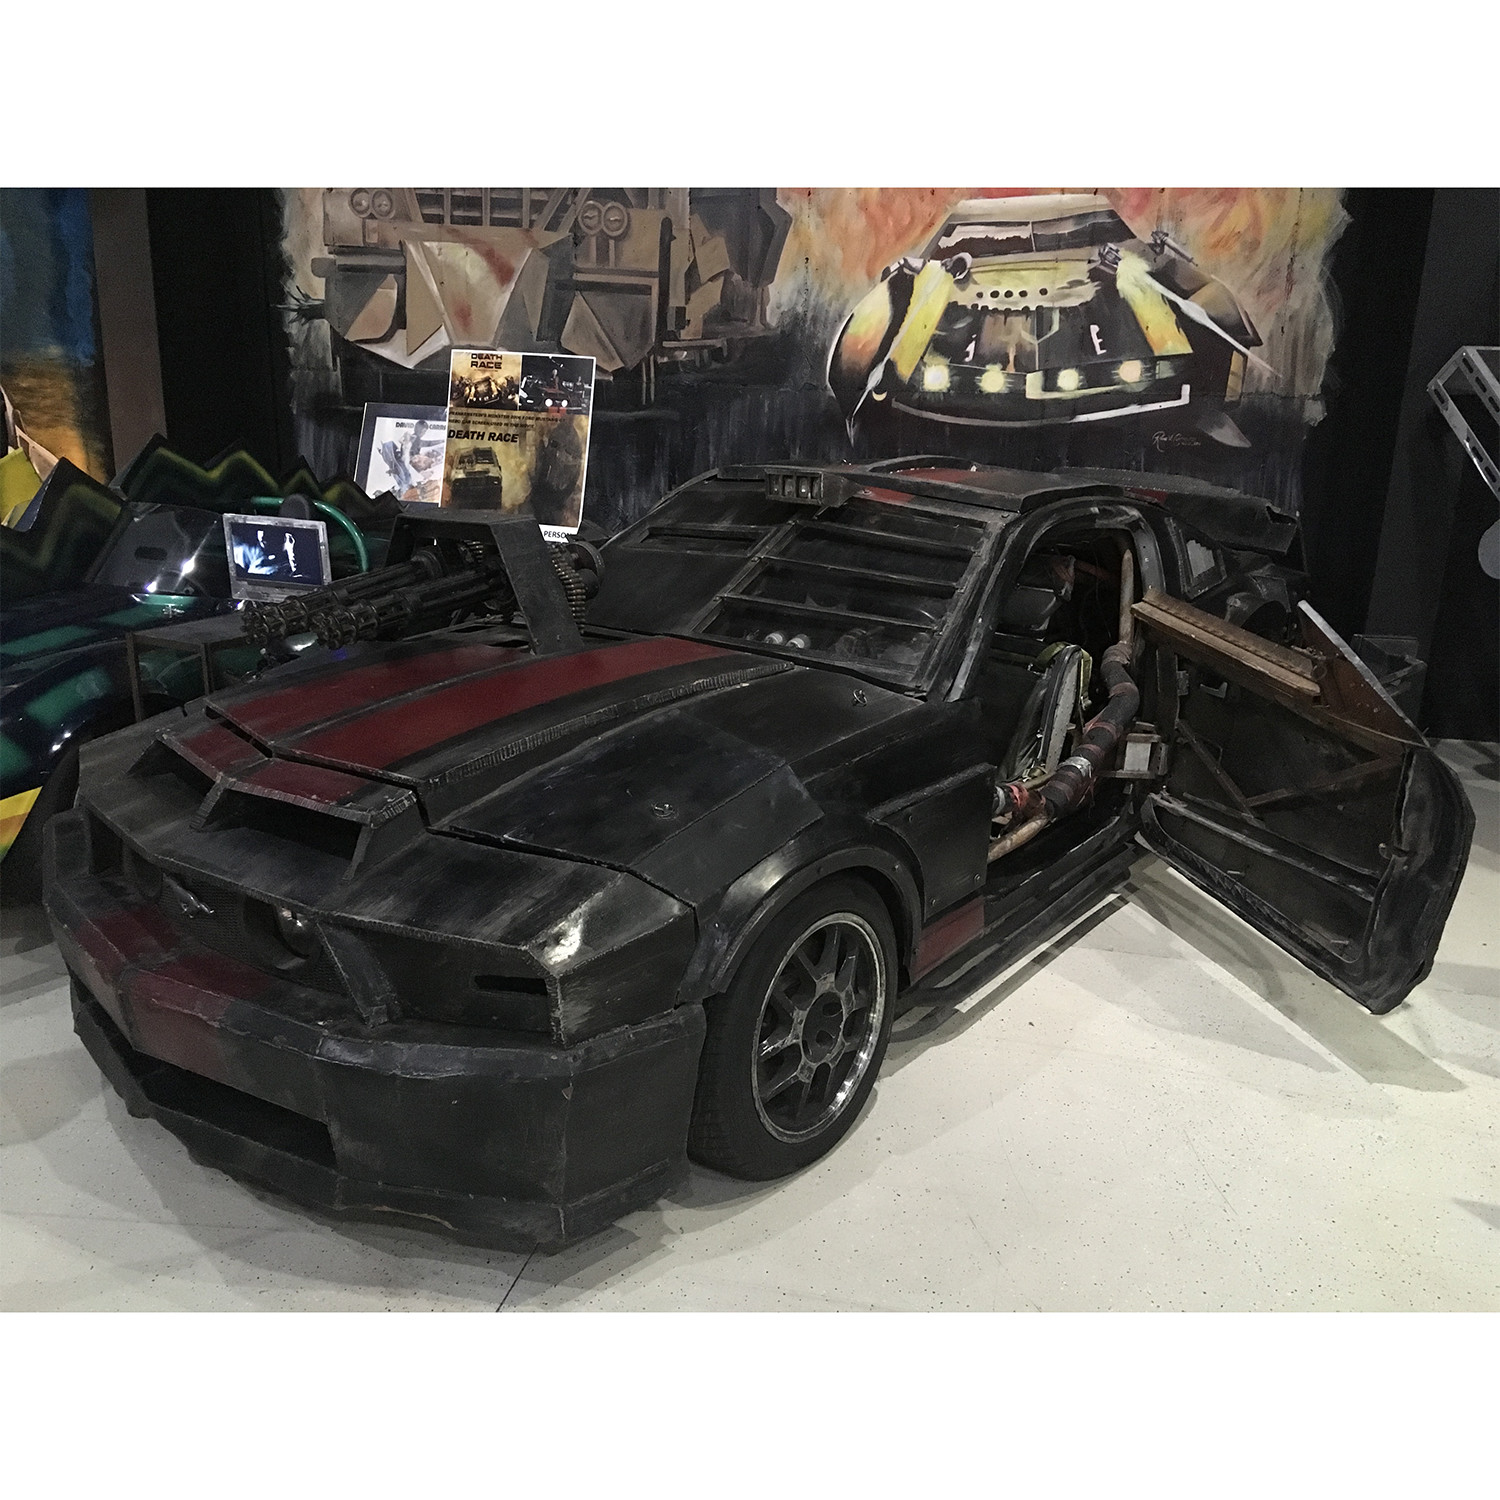 Death Race Original 2006 Mustang Gt Car Piece Of The Past Touch Of Modern